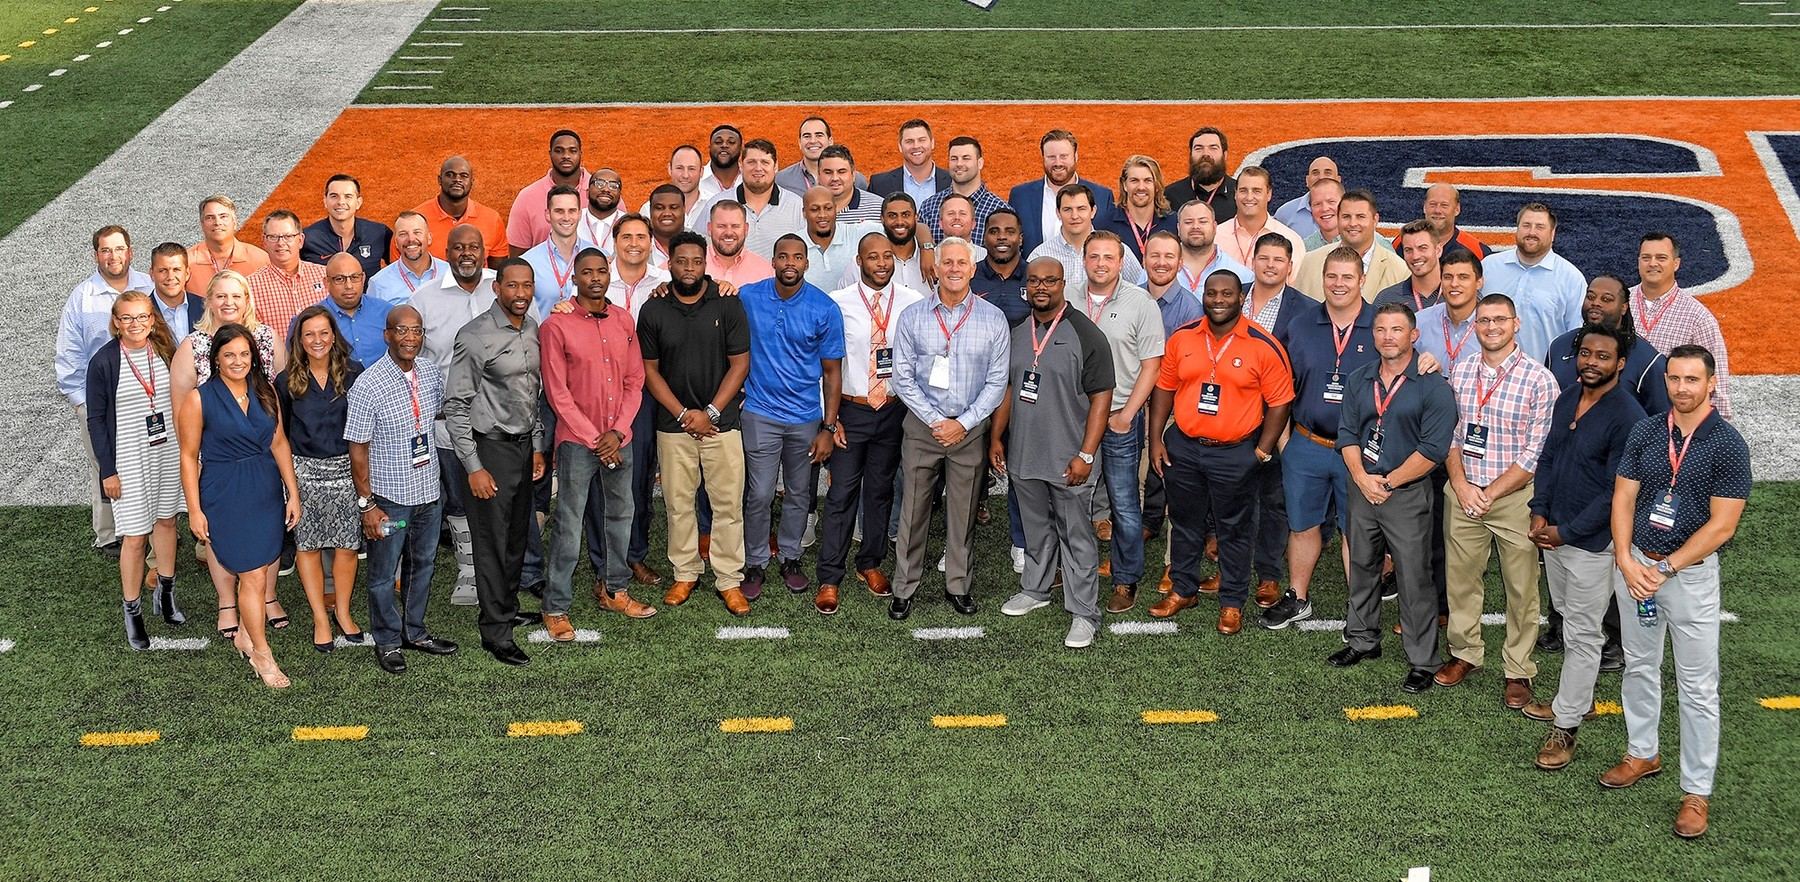 group photo of athletes and coaches who returned to C-U for the reunion